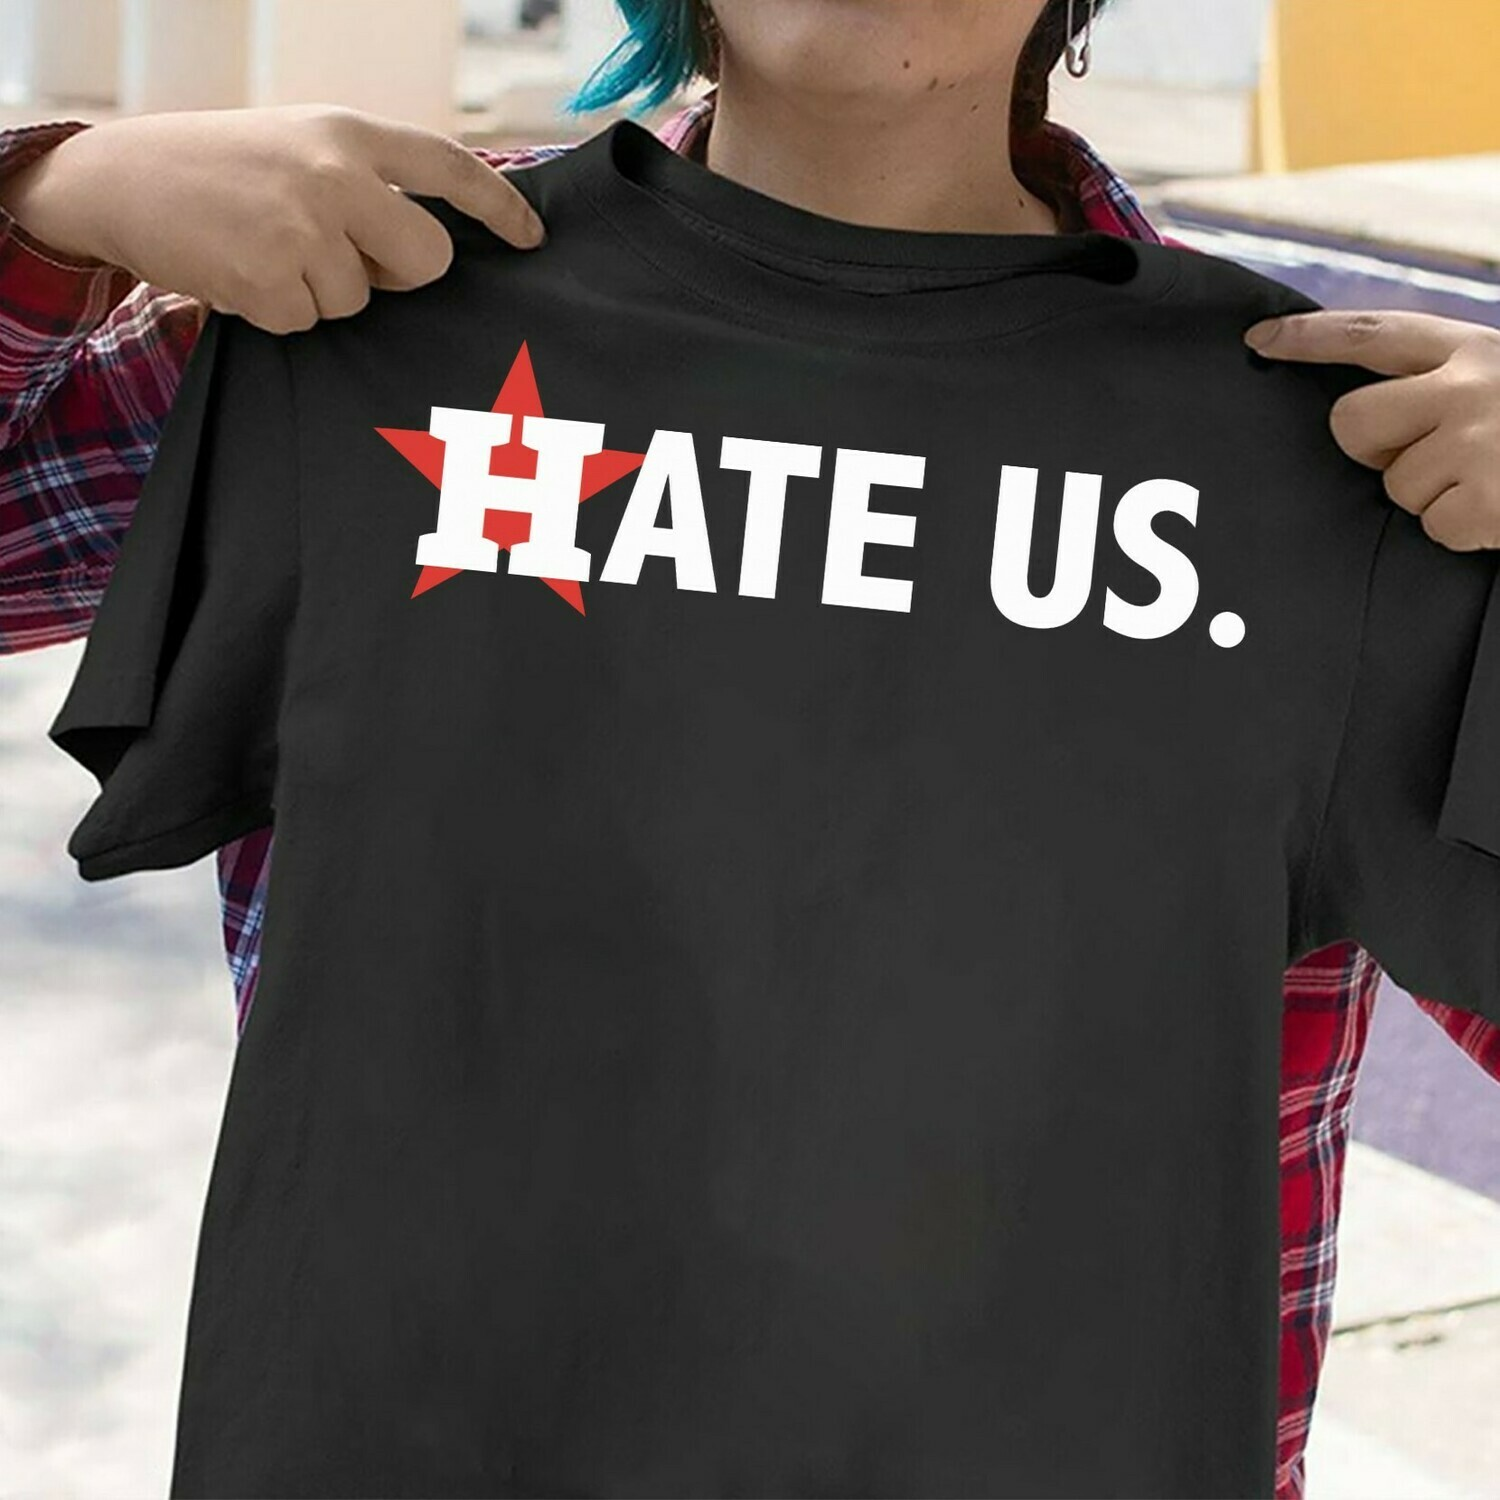 Hate Us Houston Astros Baseball Sign Stealing scandal MLB Texas  T-Shirt Hoodie Sweatshirt Sweater Tee Kids Youth Gifts Jolly Family Gifts